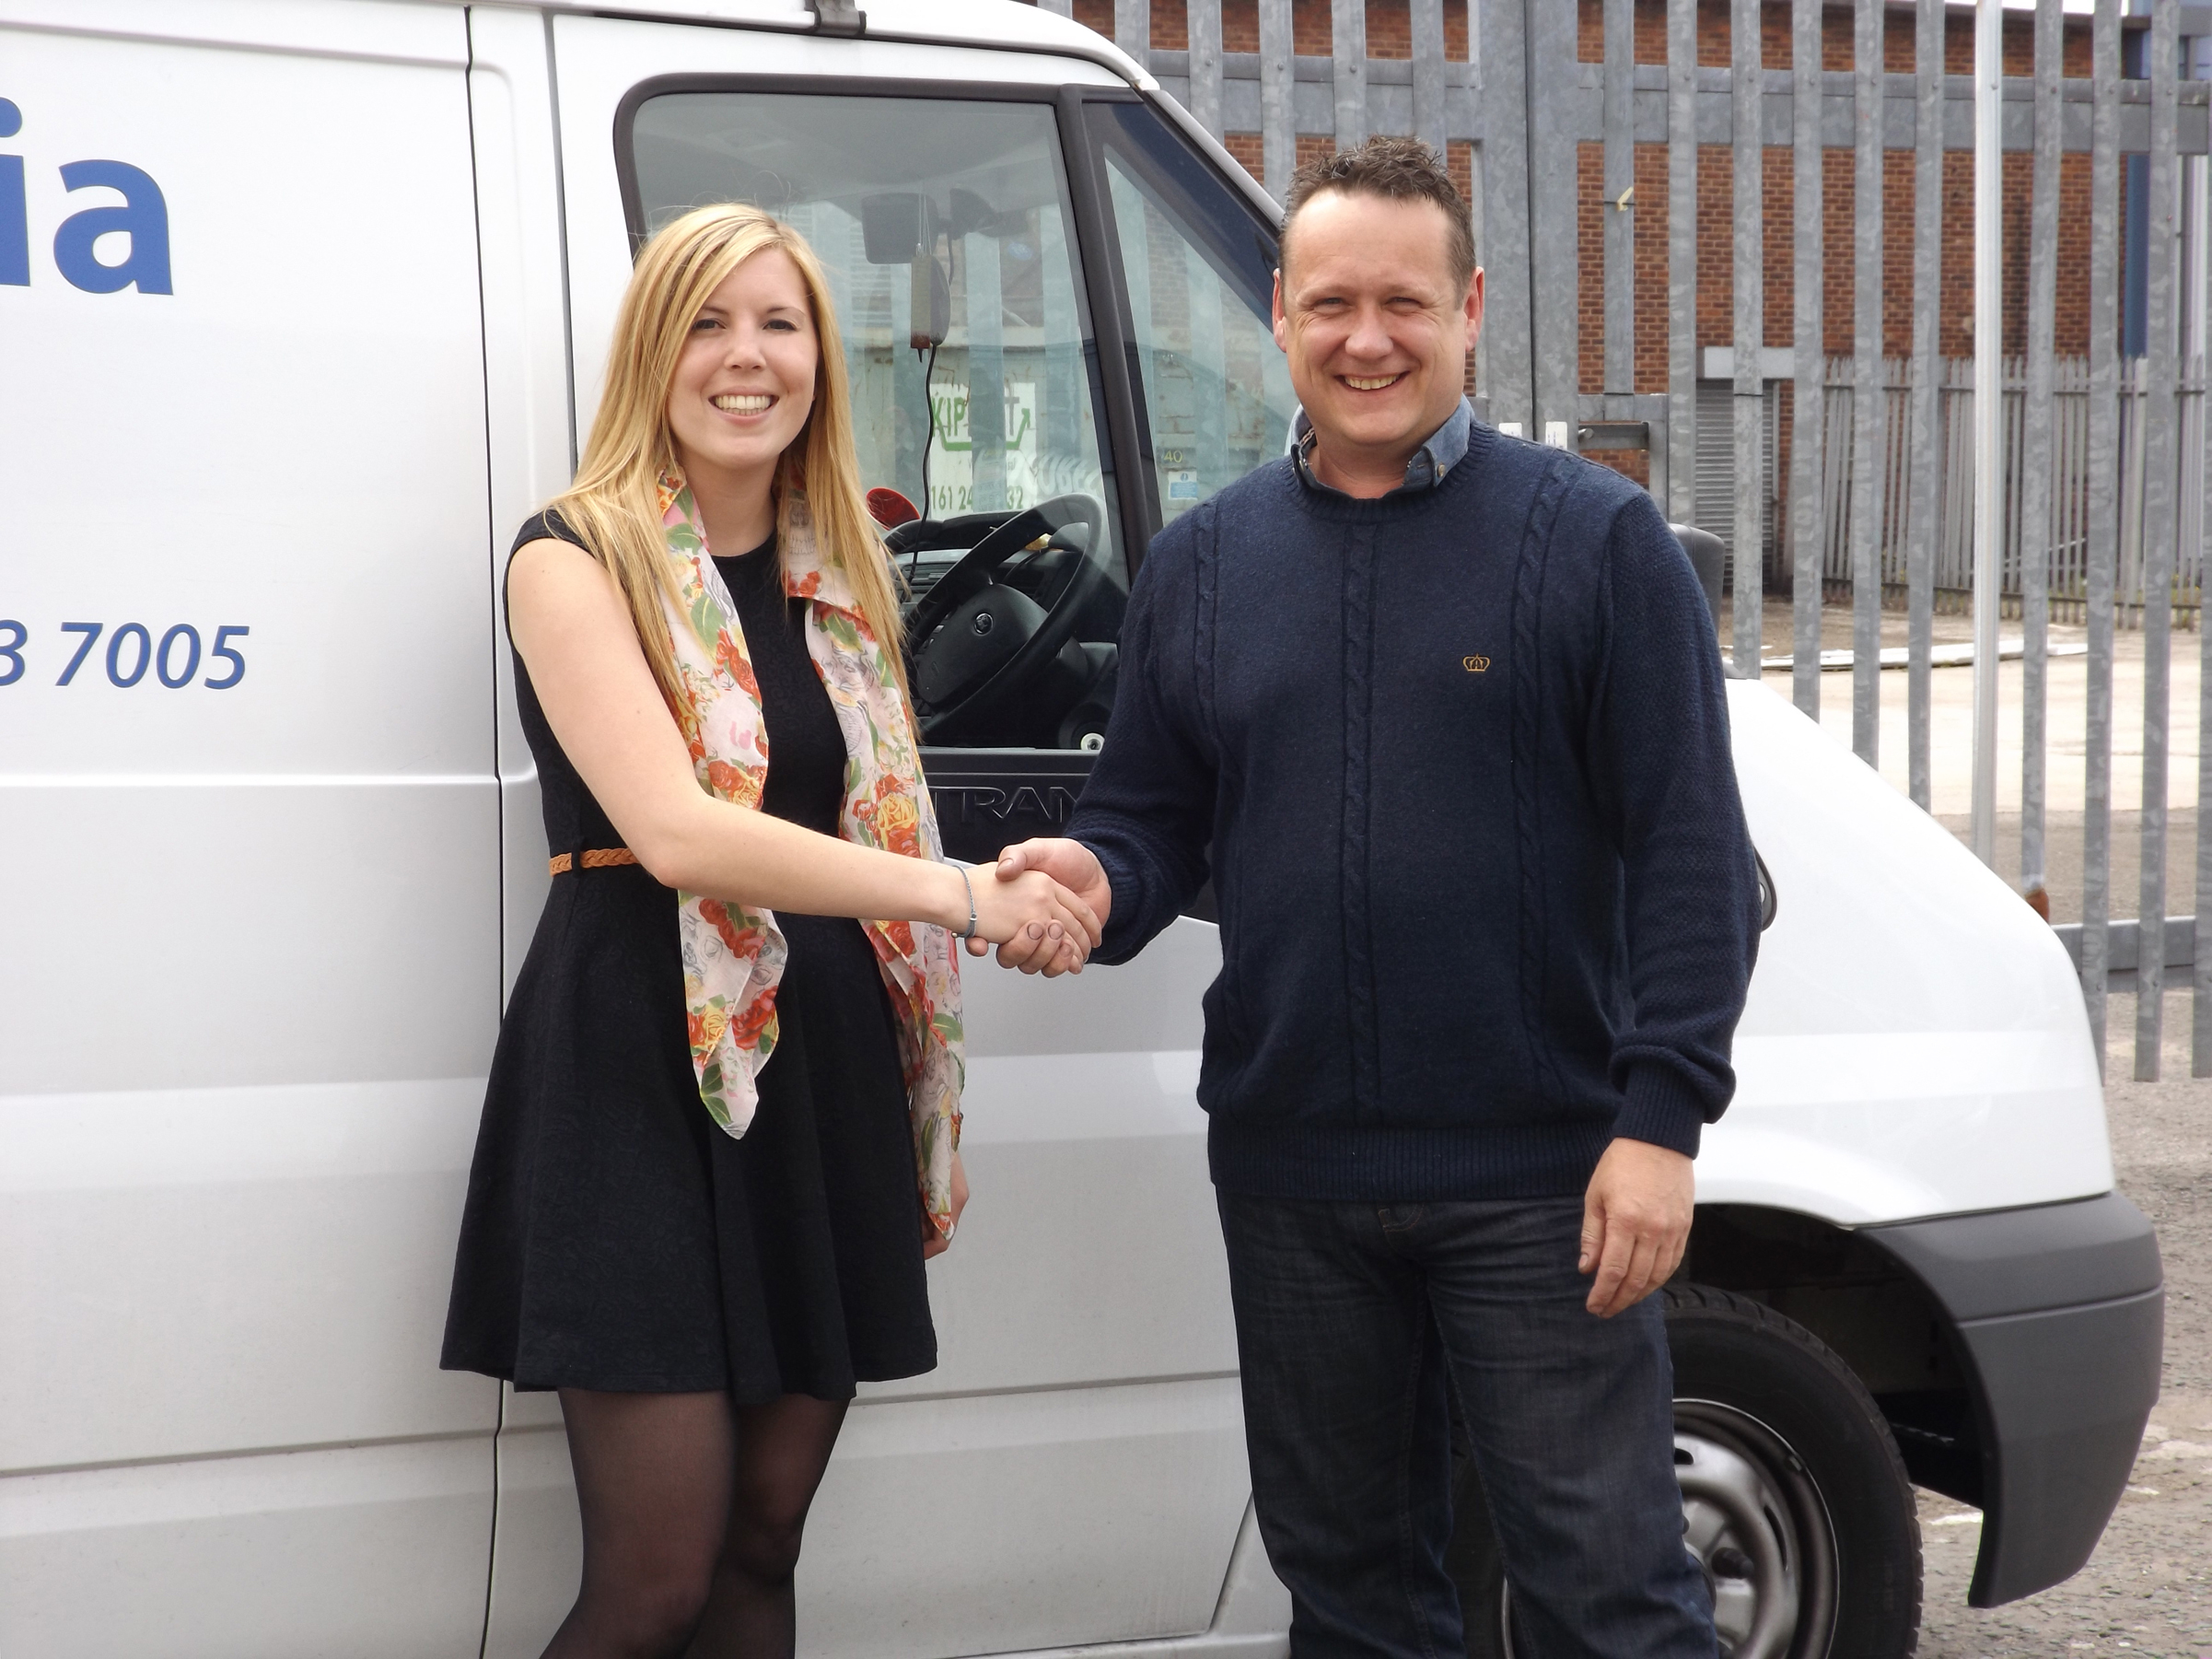 Lucy McIntosh, TouchStar Sales Executive, congratulates Tony Jones, Operations Manager at NWMS